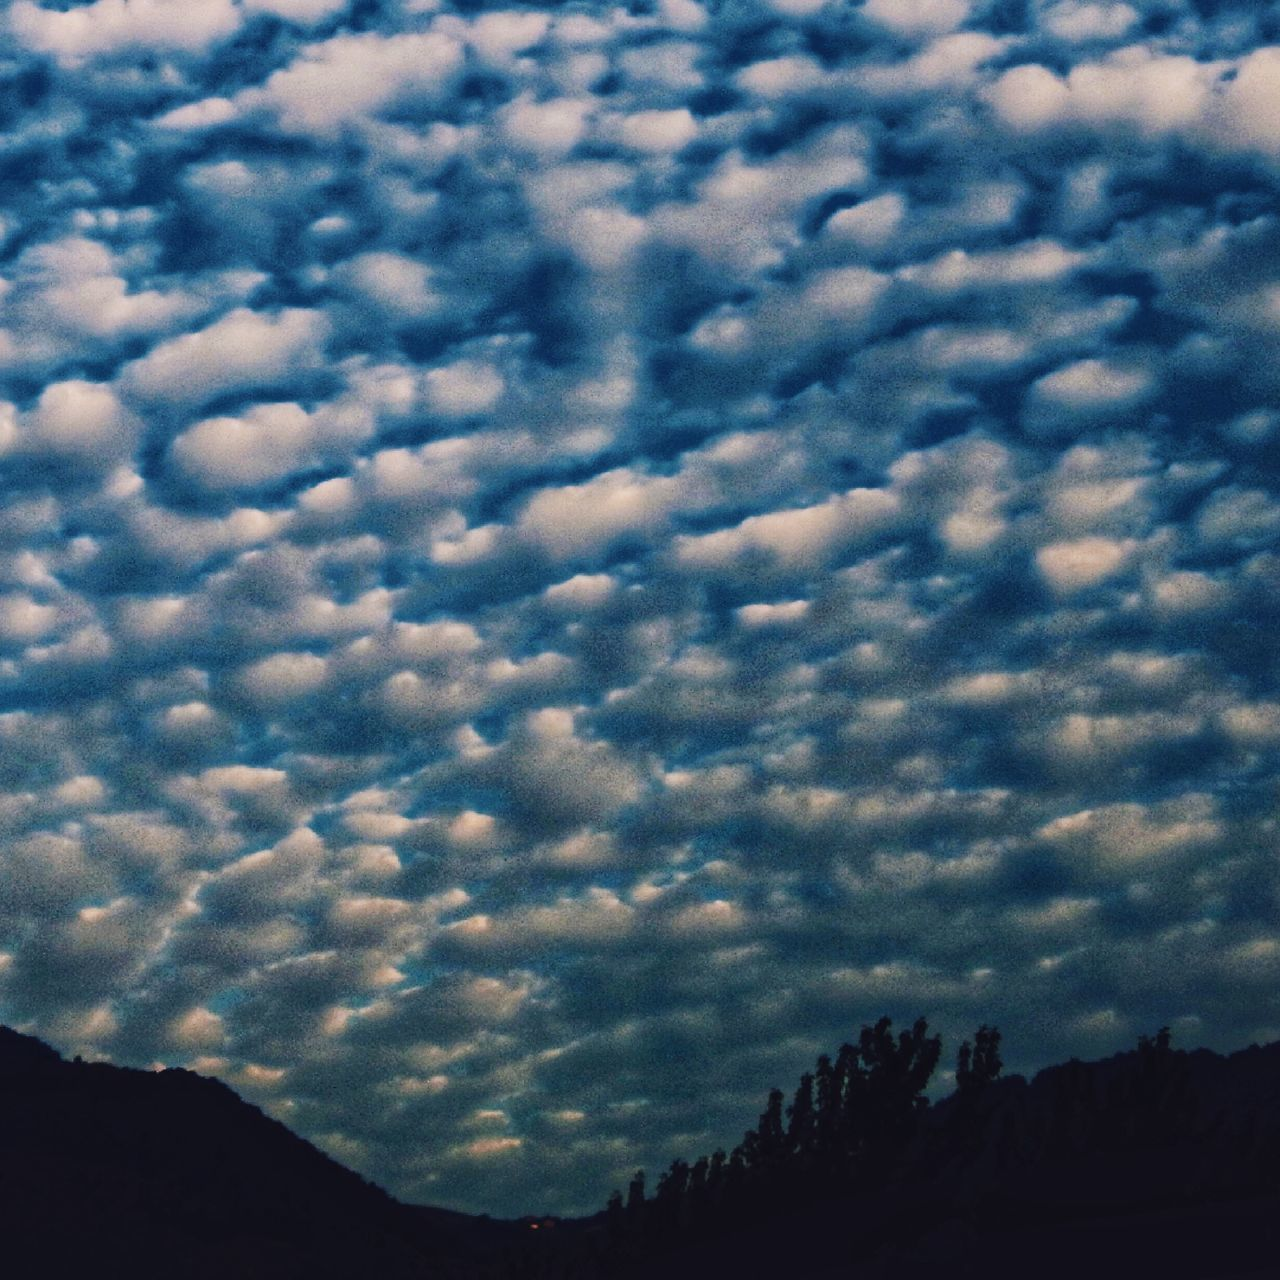 cloud - sky, sky, beauty in nature, scenics - nature, no people, tranquility, tranquil scene, nature, low angle view, mountain, silhouette, outdoors, dusk, day, architecture, sunset, cloudscape, idyllic, dramatic sky, mountain peak, ominous